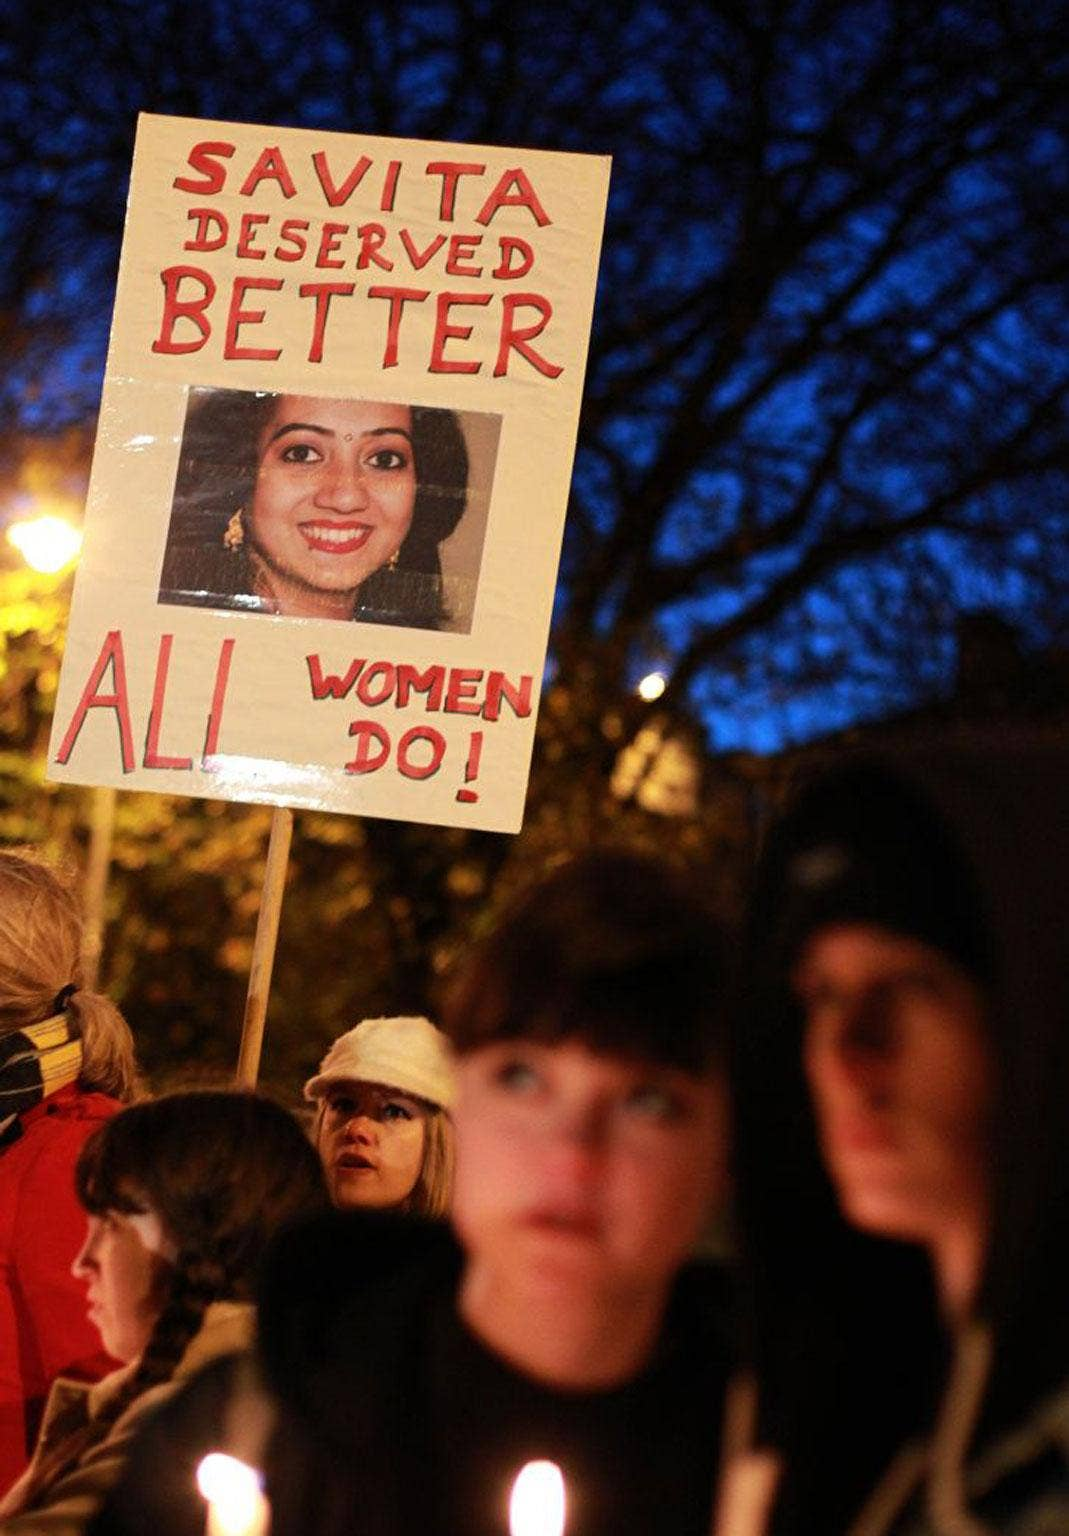 A protester outside the Irish parliament remembers Savita Halappanavar, who died after being refused an abortion